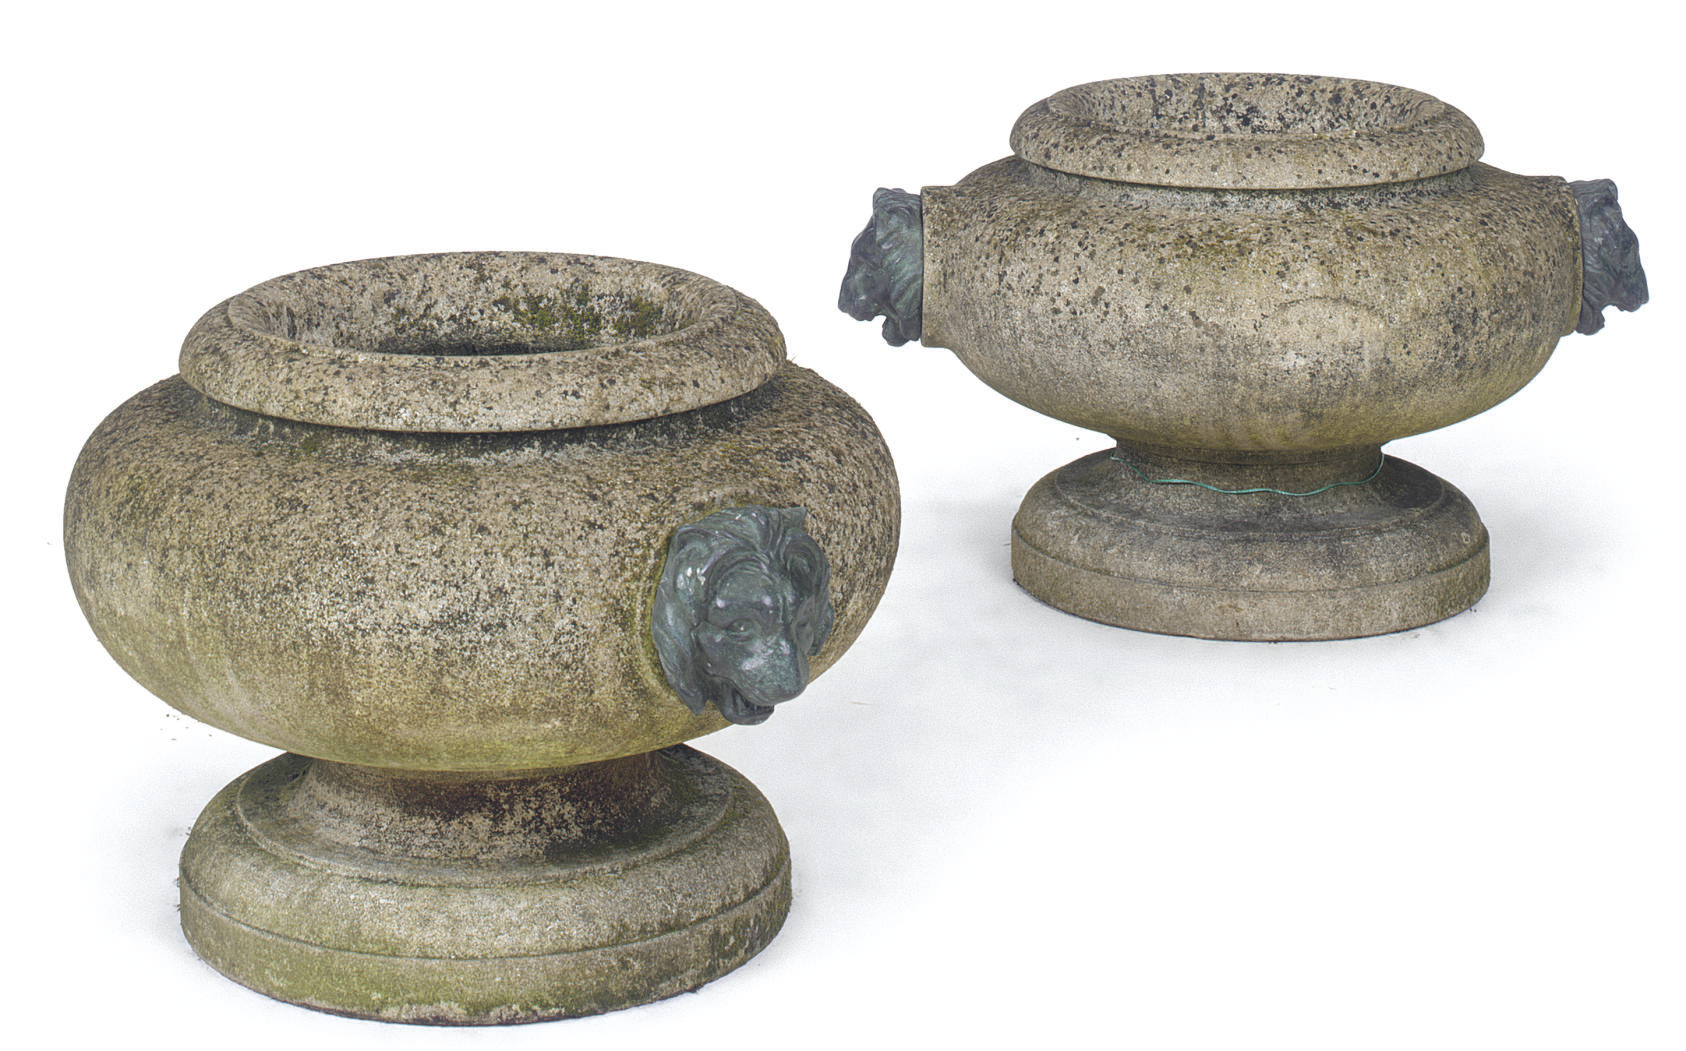 A PAIR OF STONE URNS